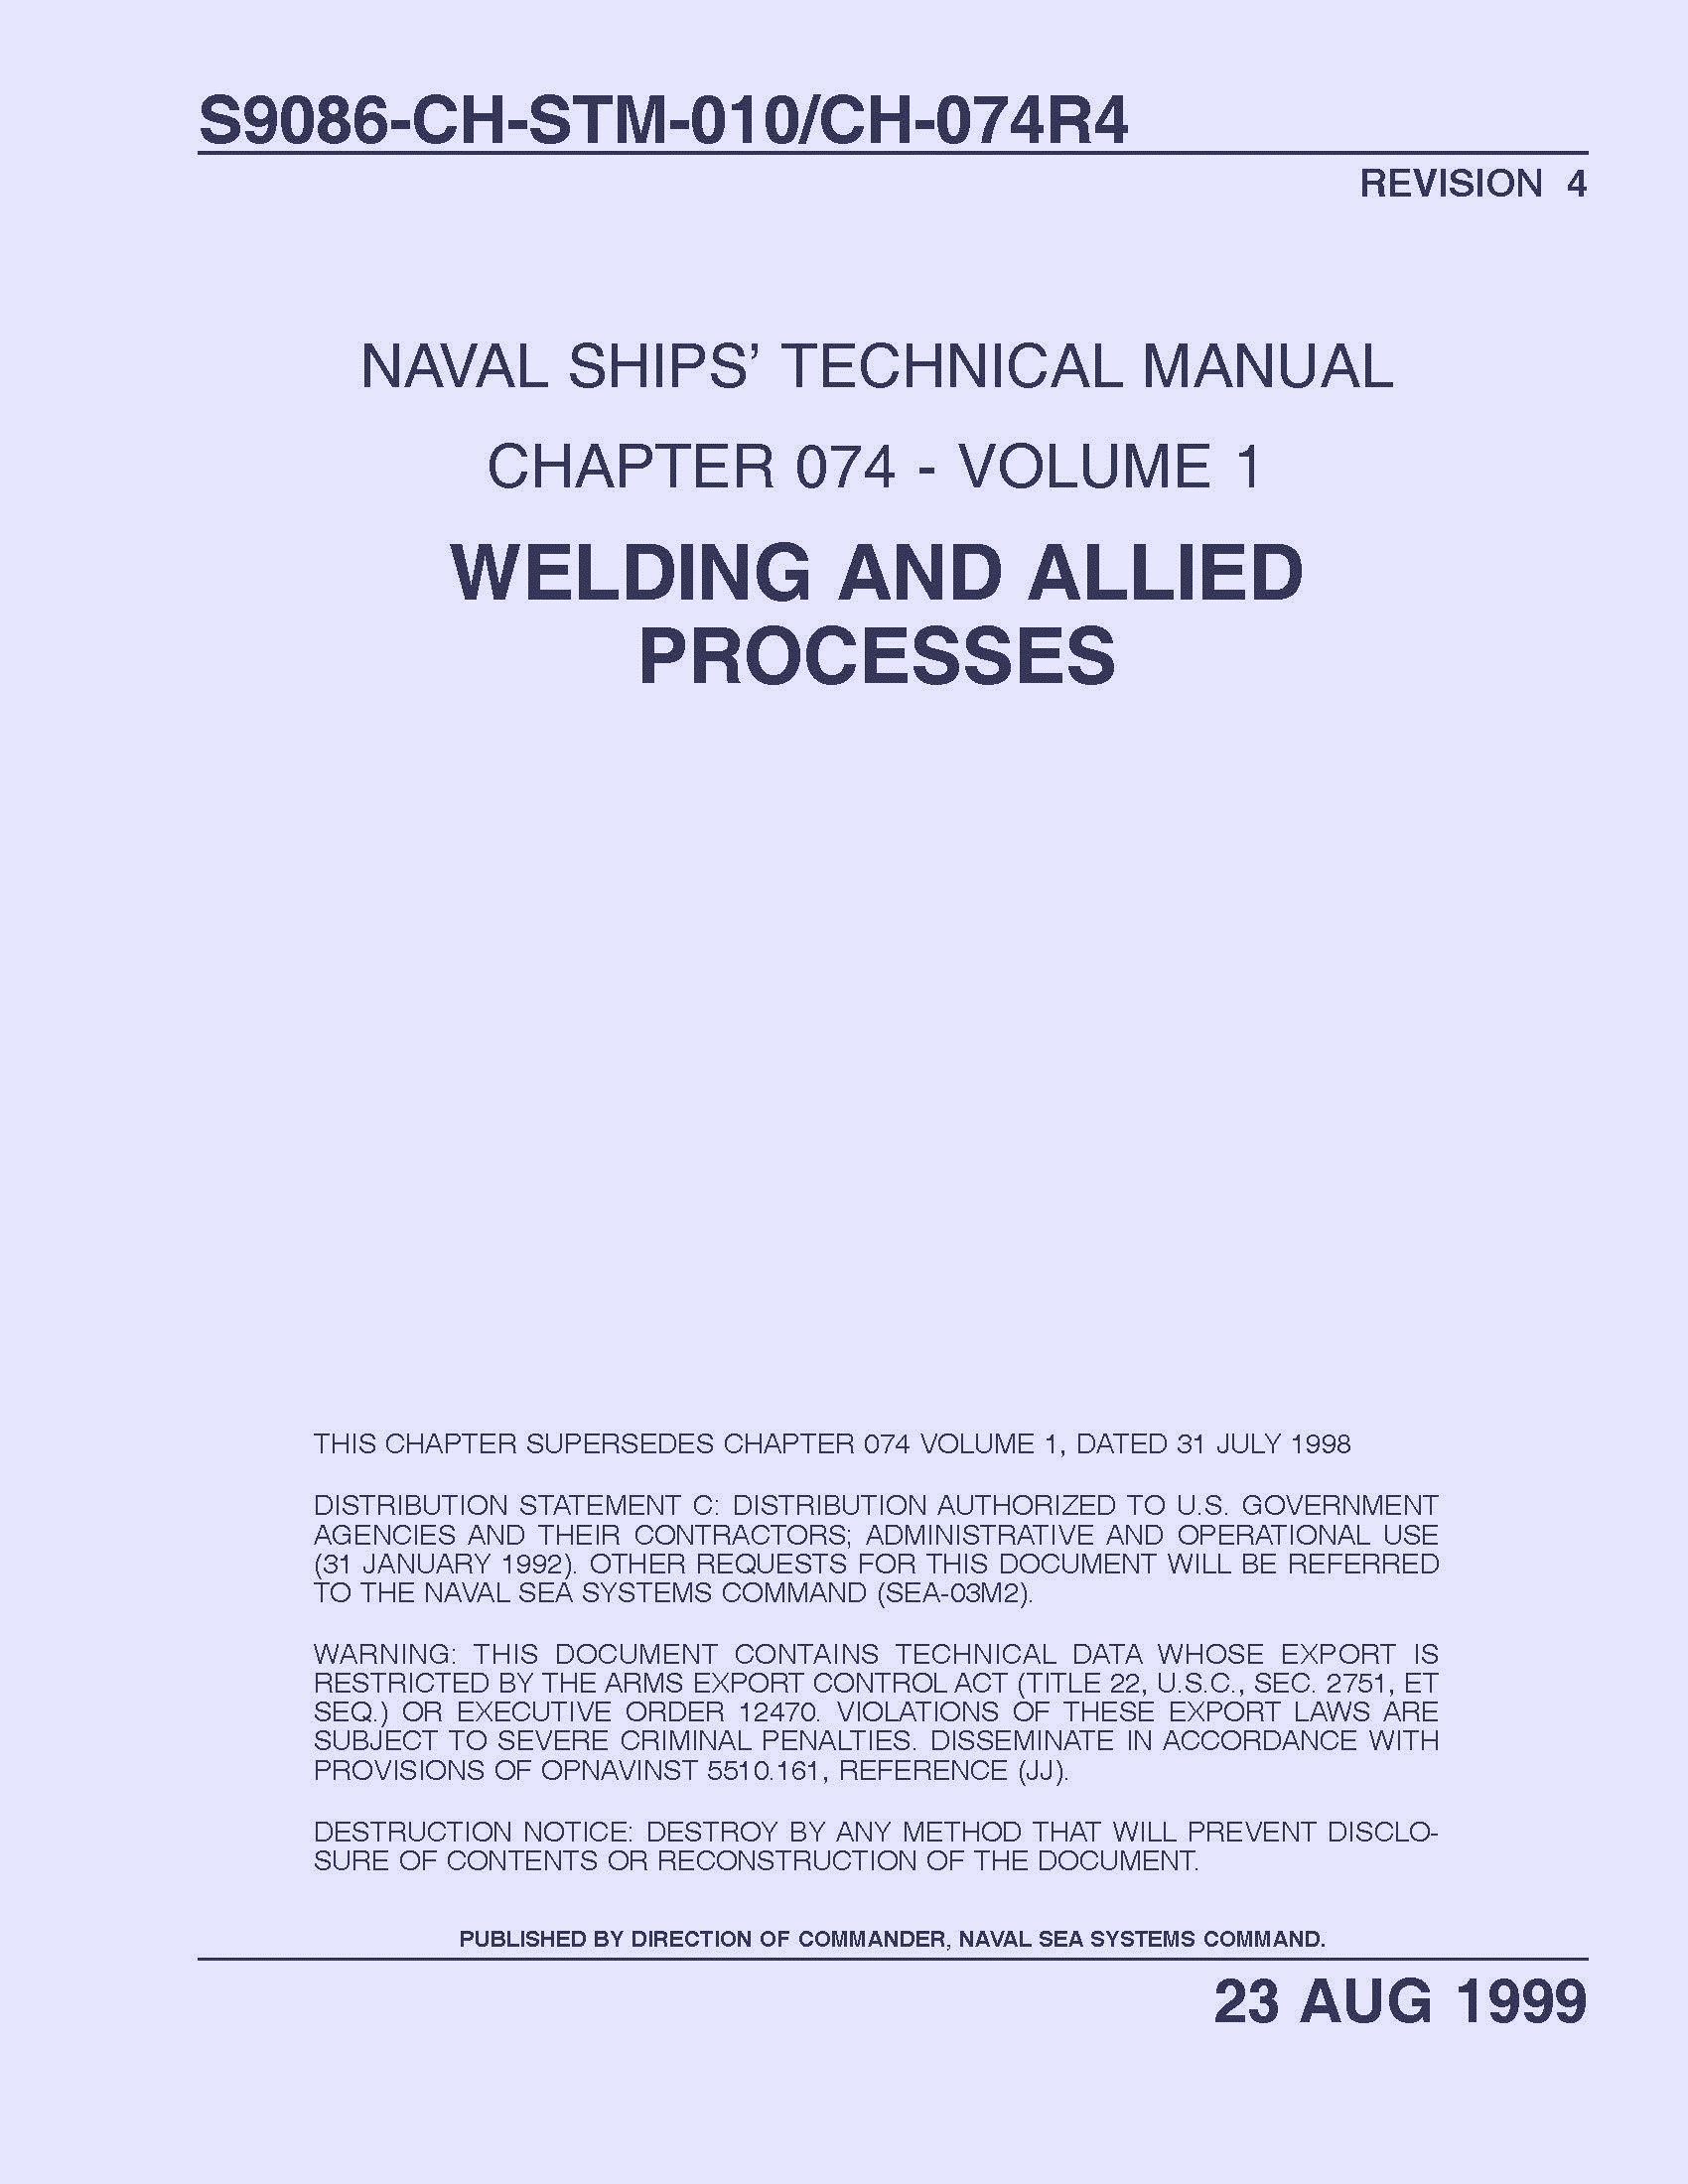 WELDING AND ALLIED PROCESSES, CHAPTER 074 - VOLUME 1 of the NAVAL SHIPS'  TECHNICAL MANUAL Revision 4 (S9086-CH-STM-010/CH-074R4): NAVAL SEA SYSTEMS  COMMAND: ...